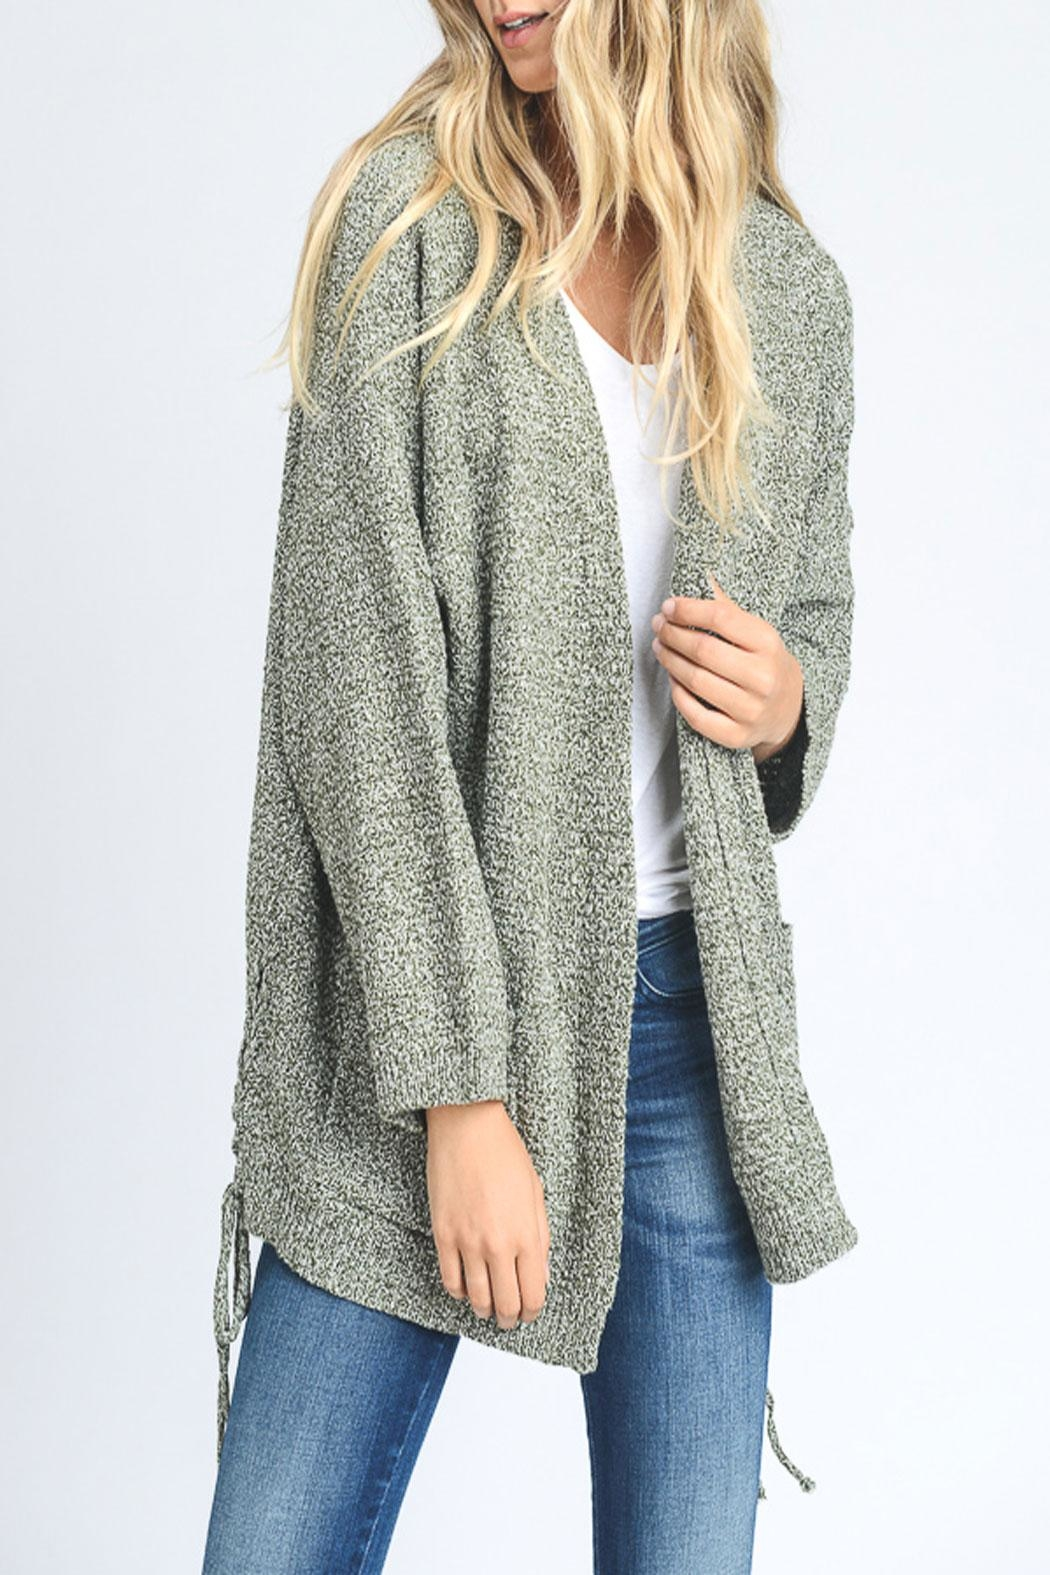 Hopely Side-Tie Cardigan - Main Image